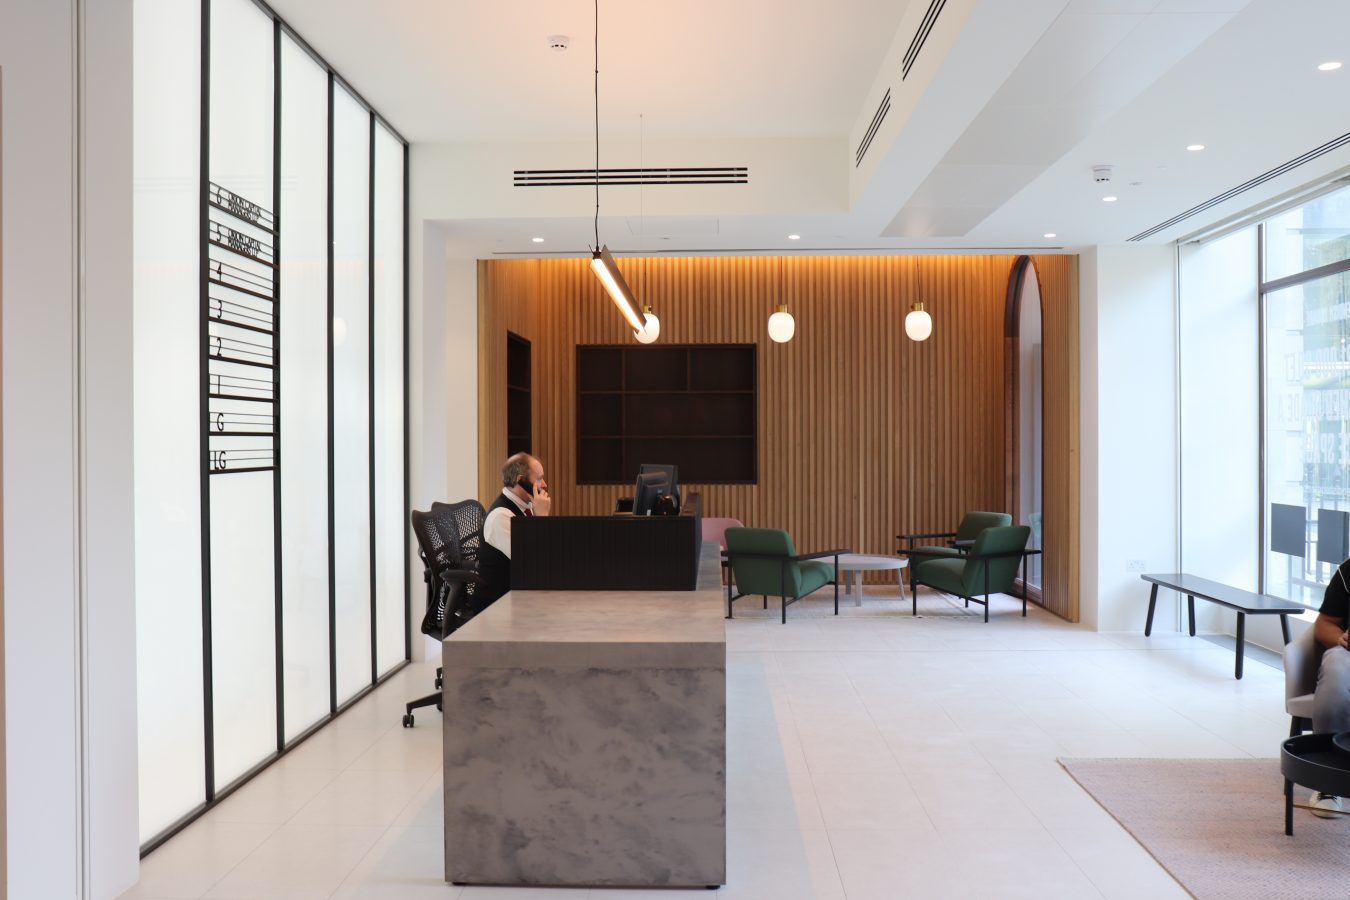 Major office fit-out and refurbishment of a reception space conducted by Open as main contractors at 2 Cavendish Square.